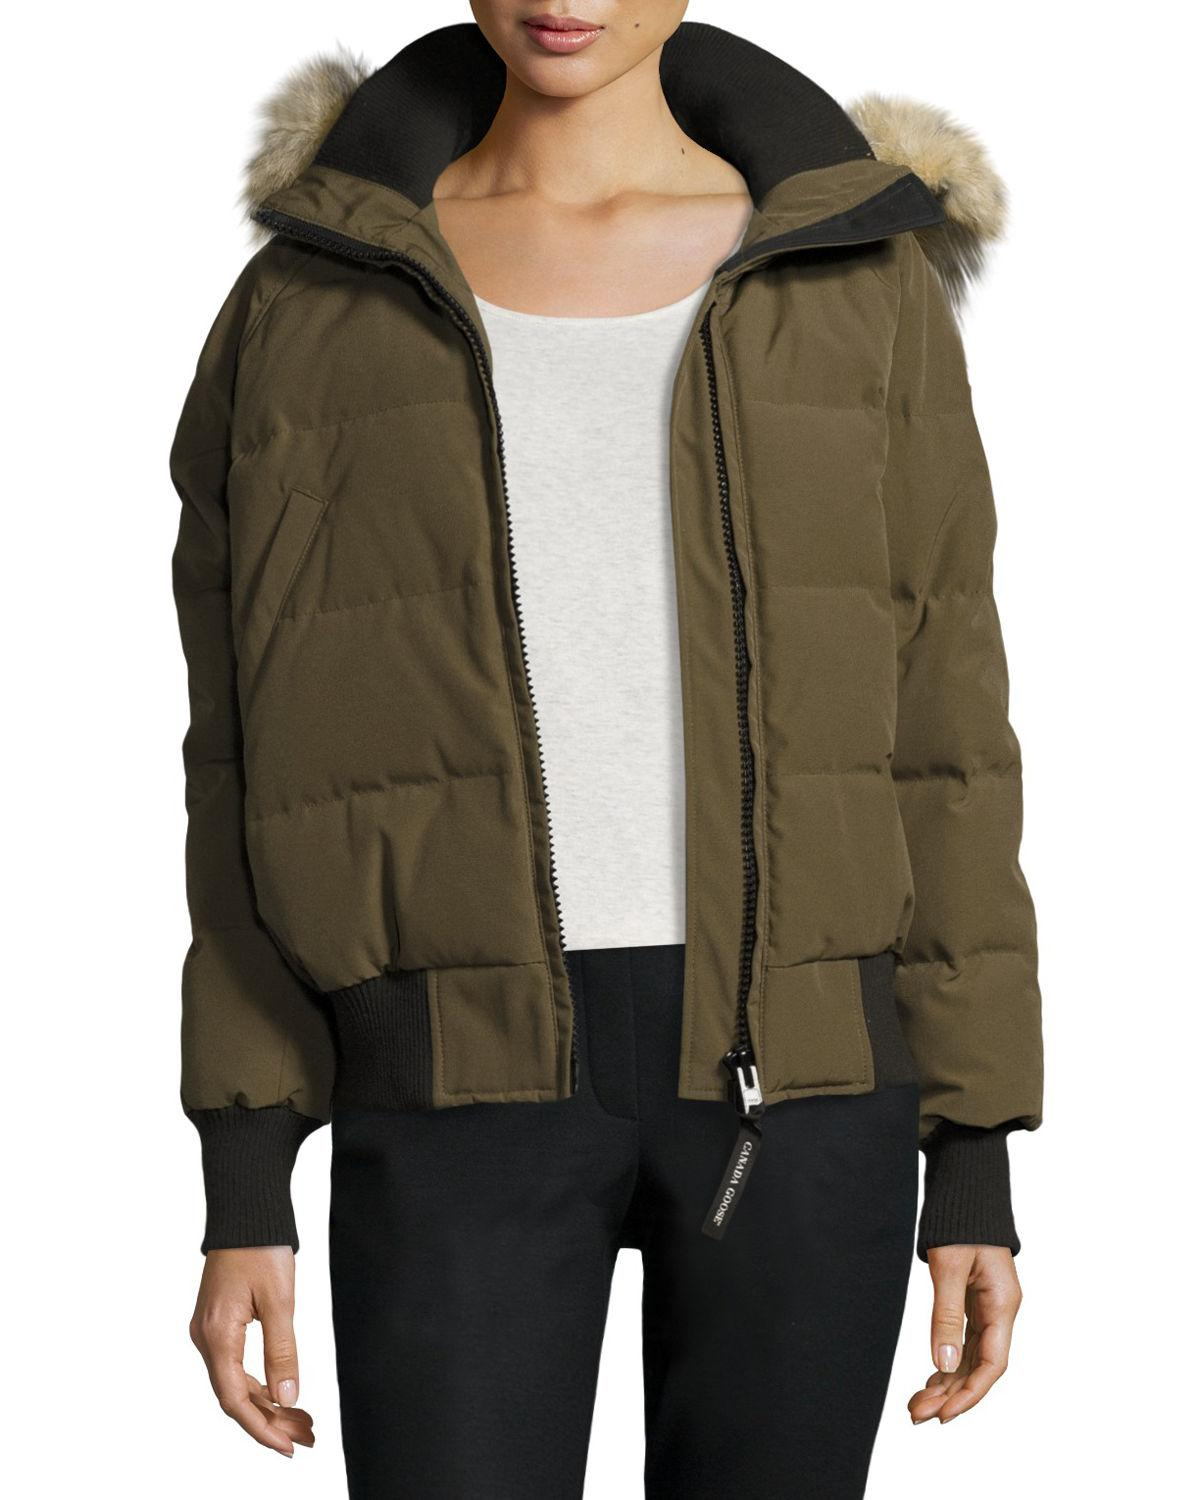 Canada Goose - Green Savona Hooded Quilted Bomber Jacket - Lyst. View fullscreen